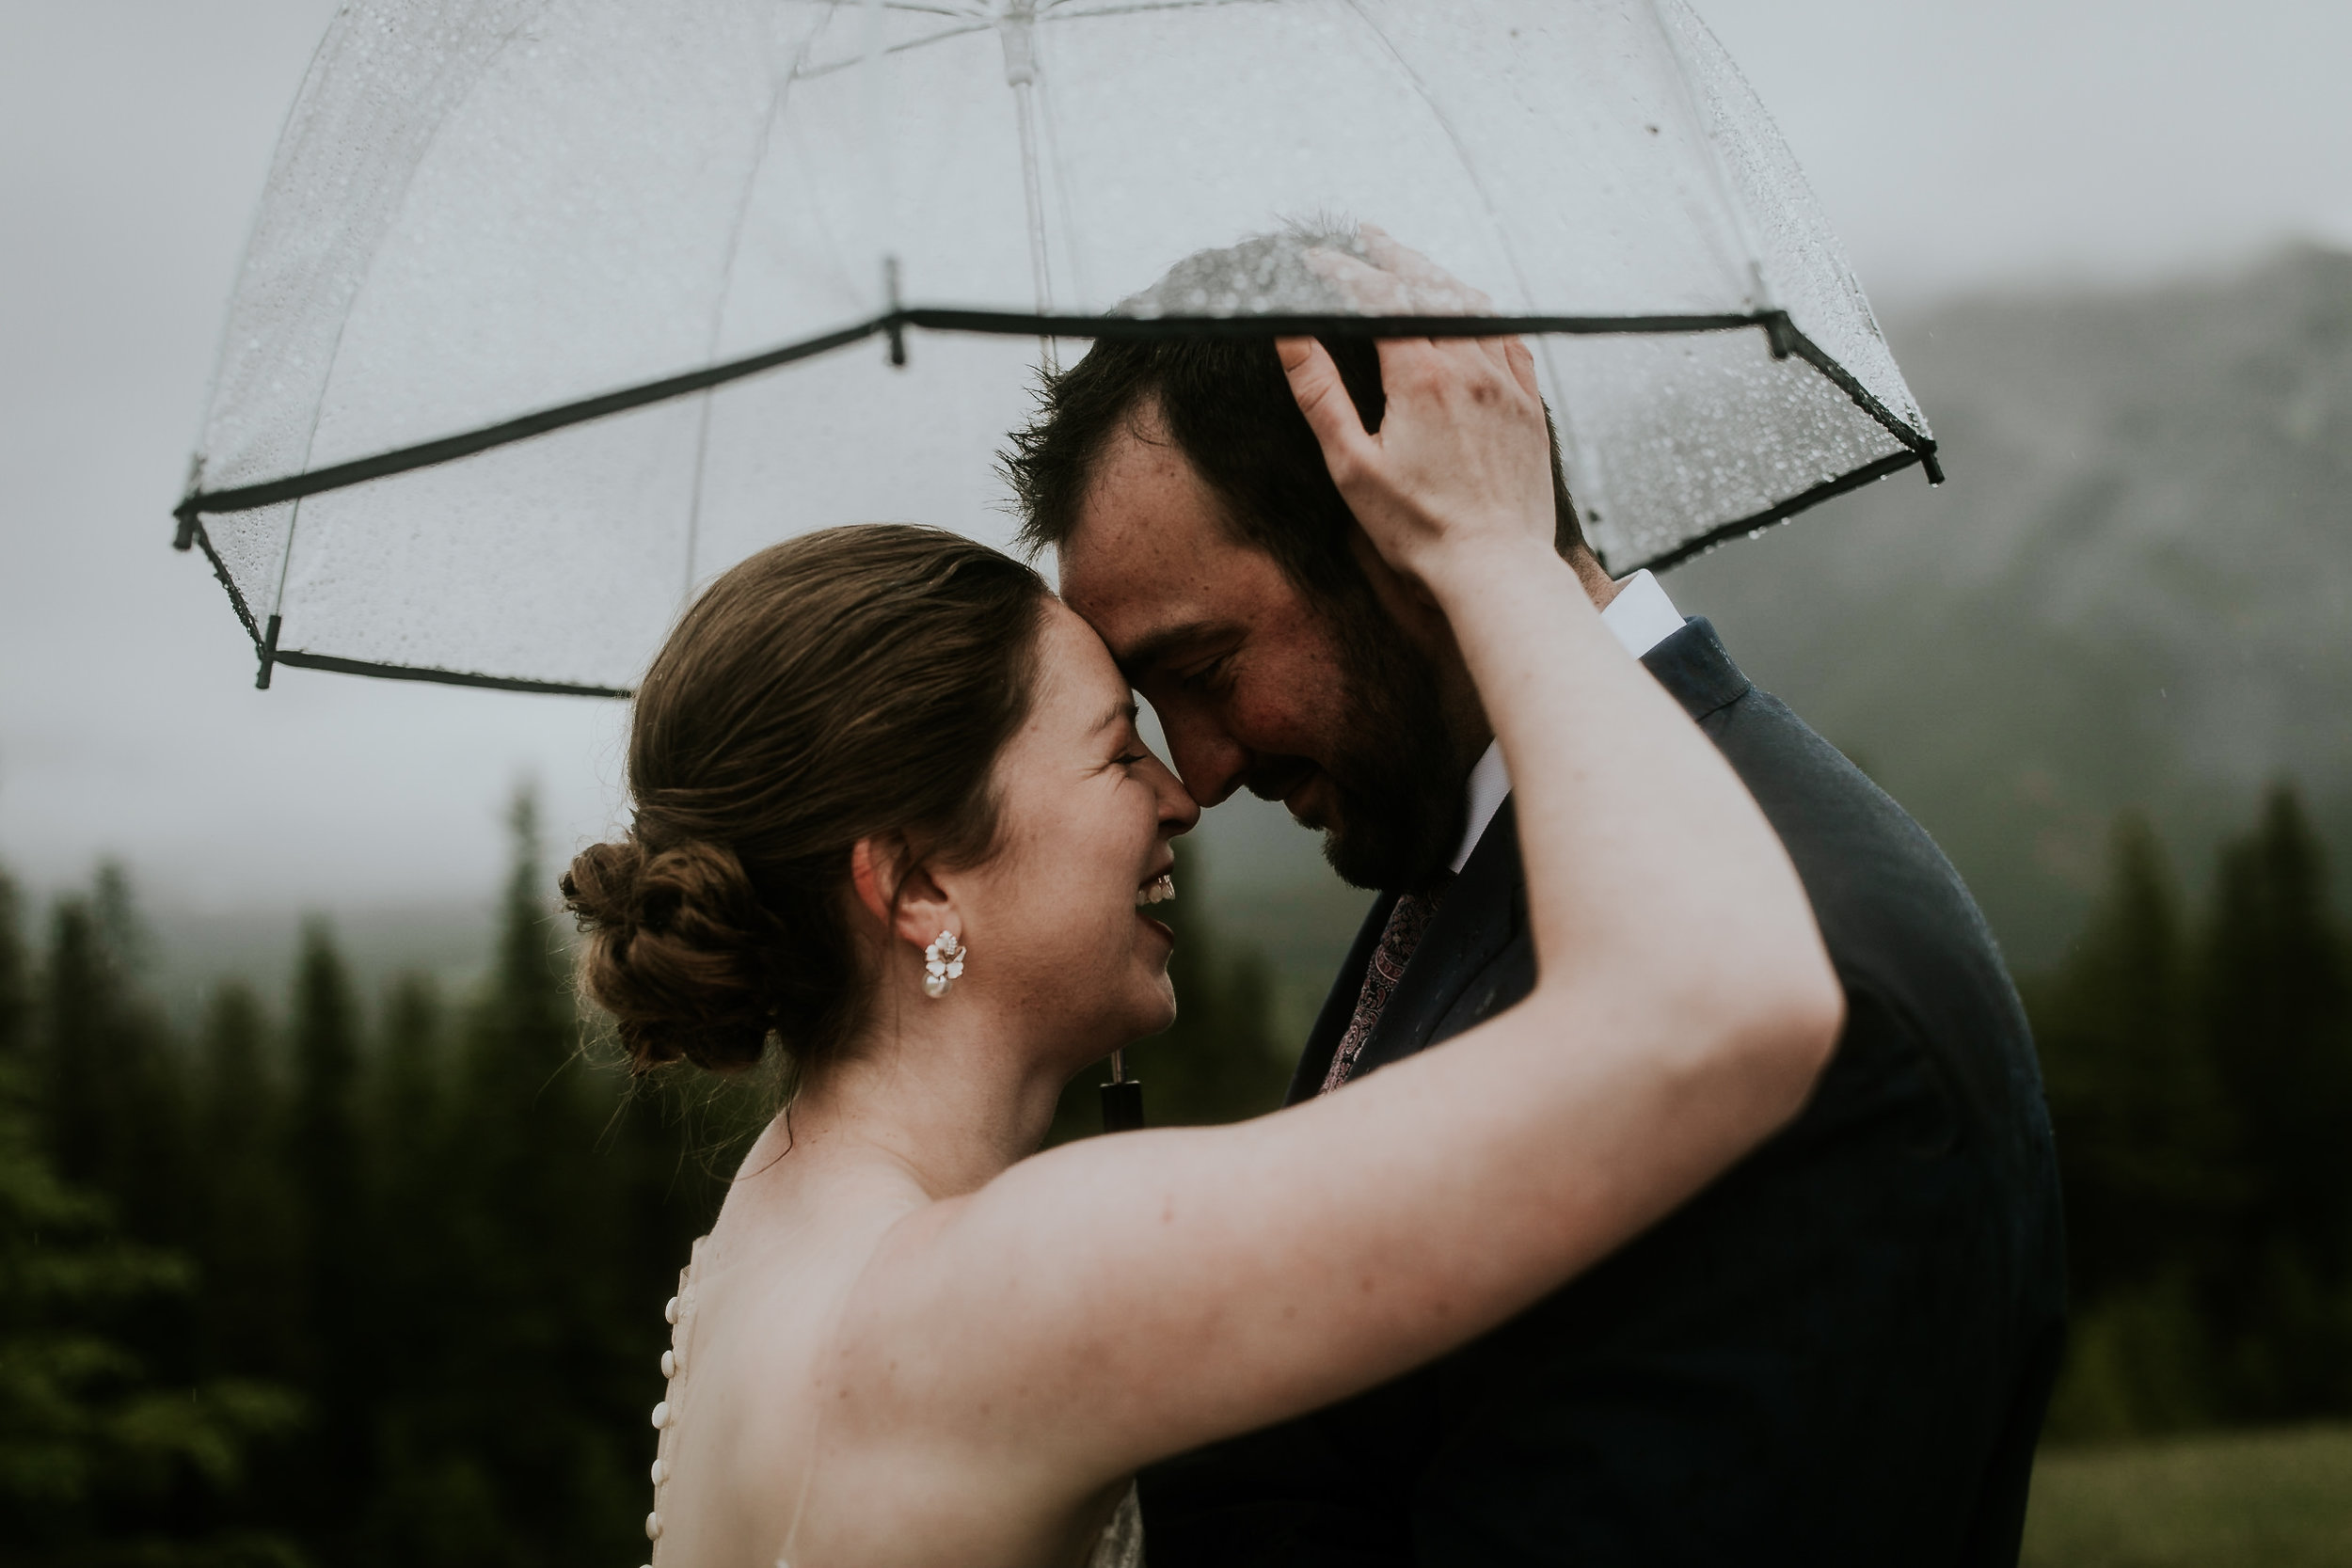 Newlywed couple embraces each other and smiling at each other underneath an umbrella during their rainy mountain wedding ceremony in Banff.